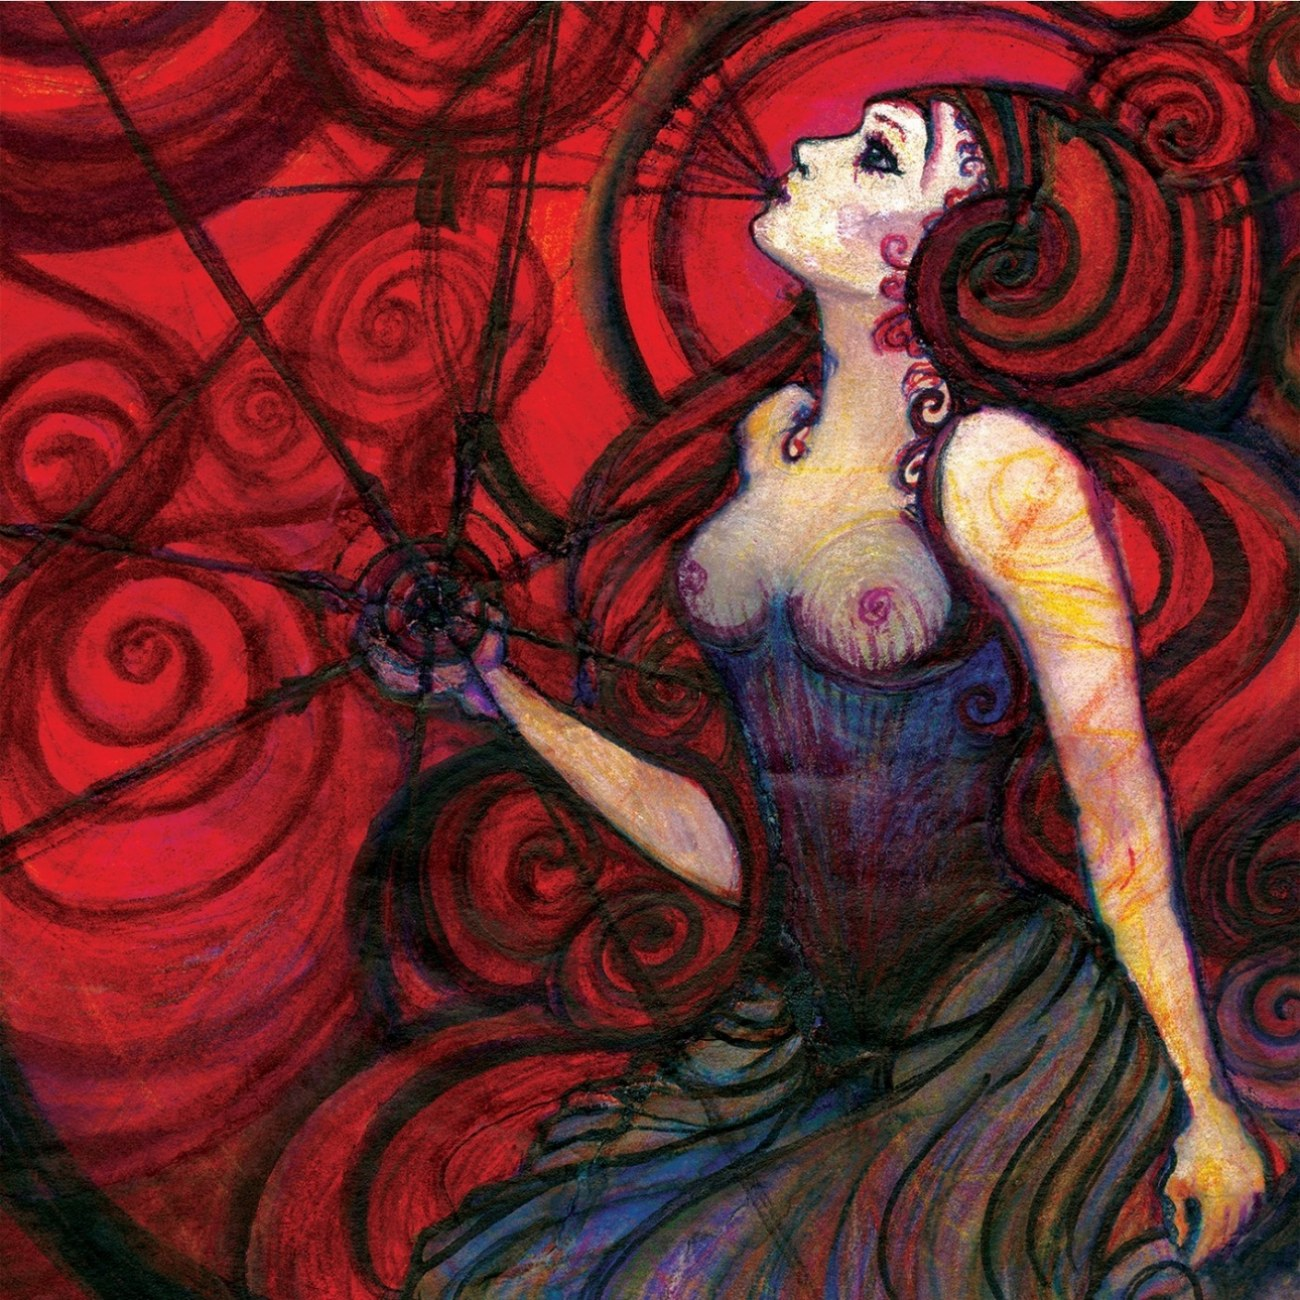 Review for Nachtmystium - The World We Left Behind